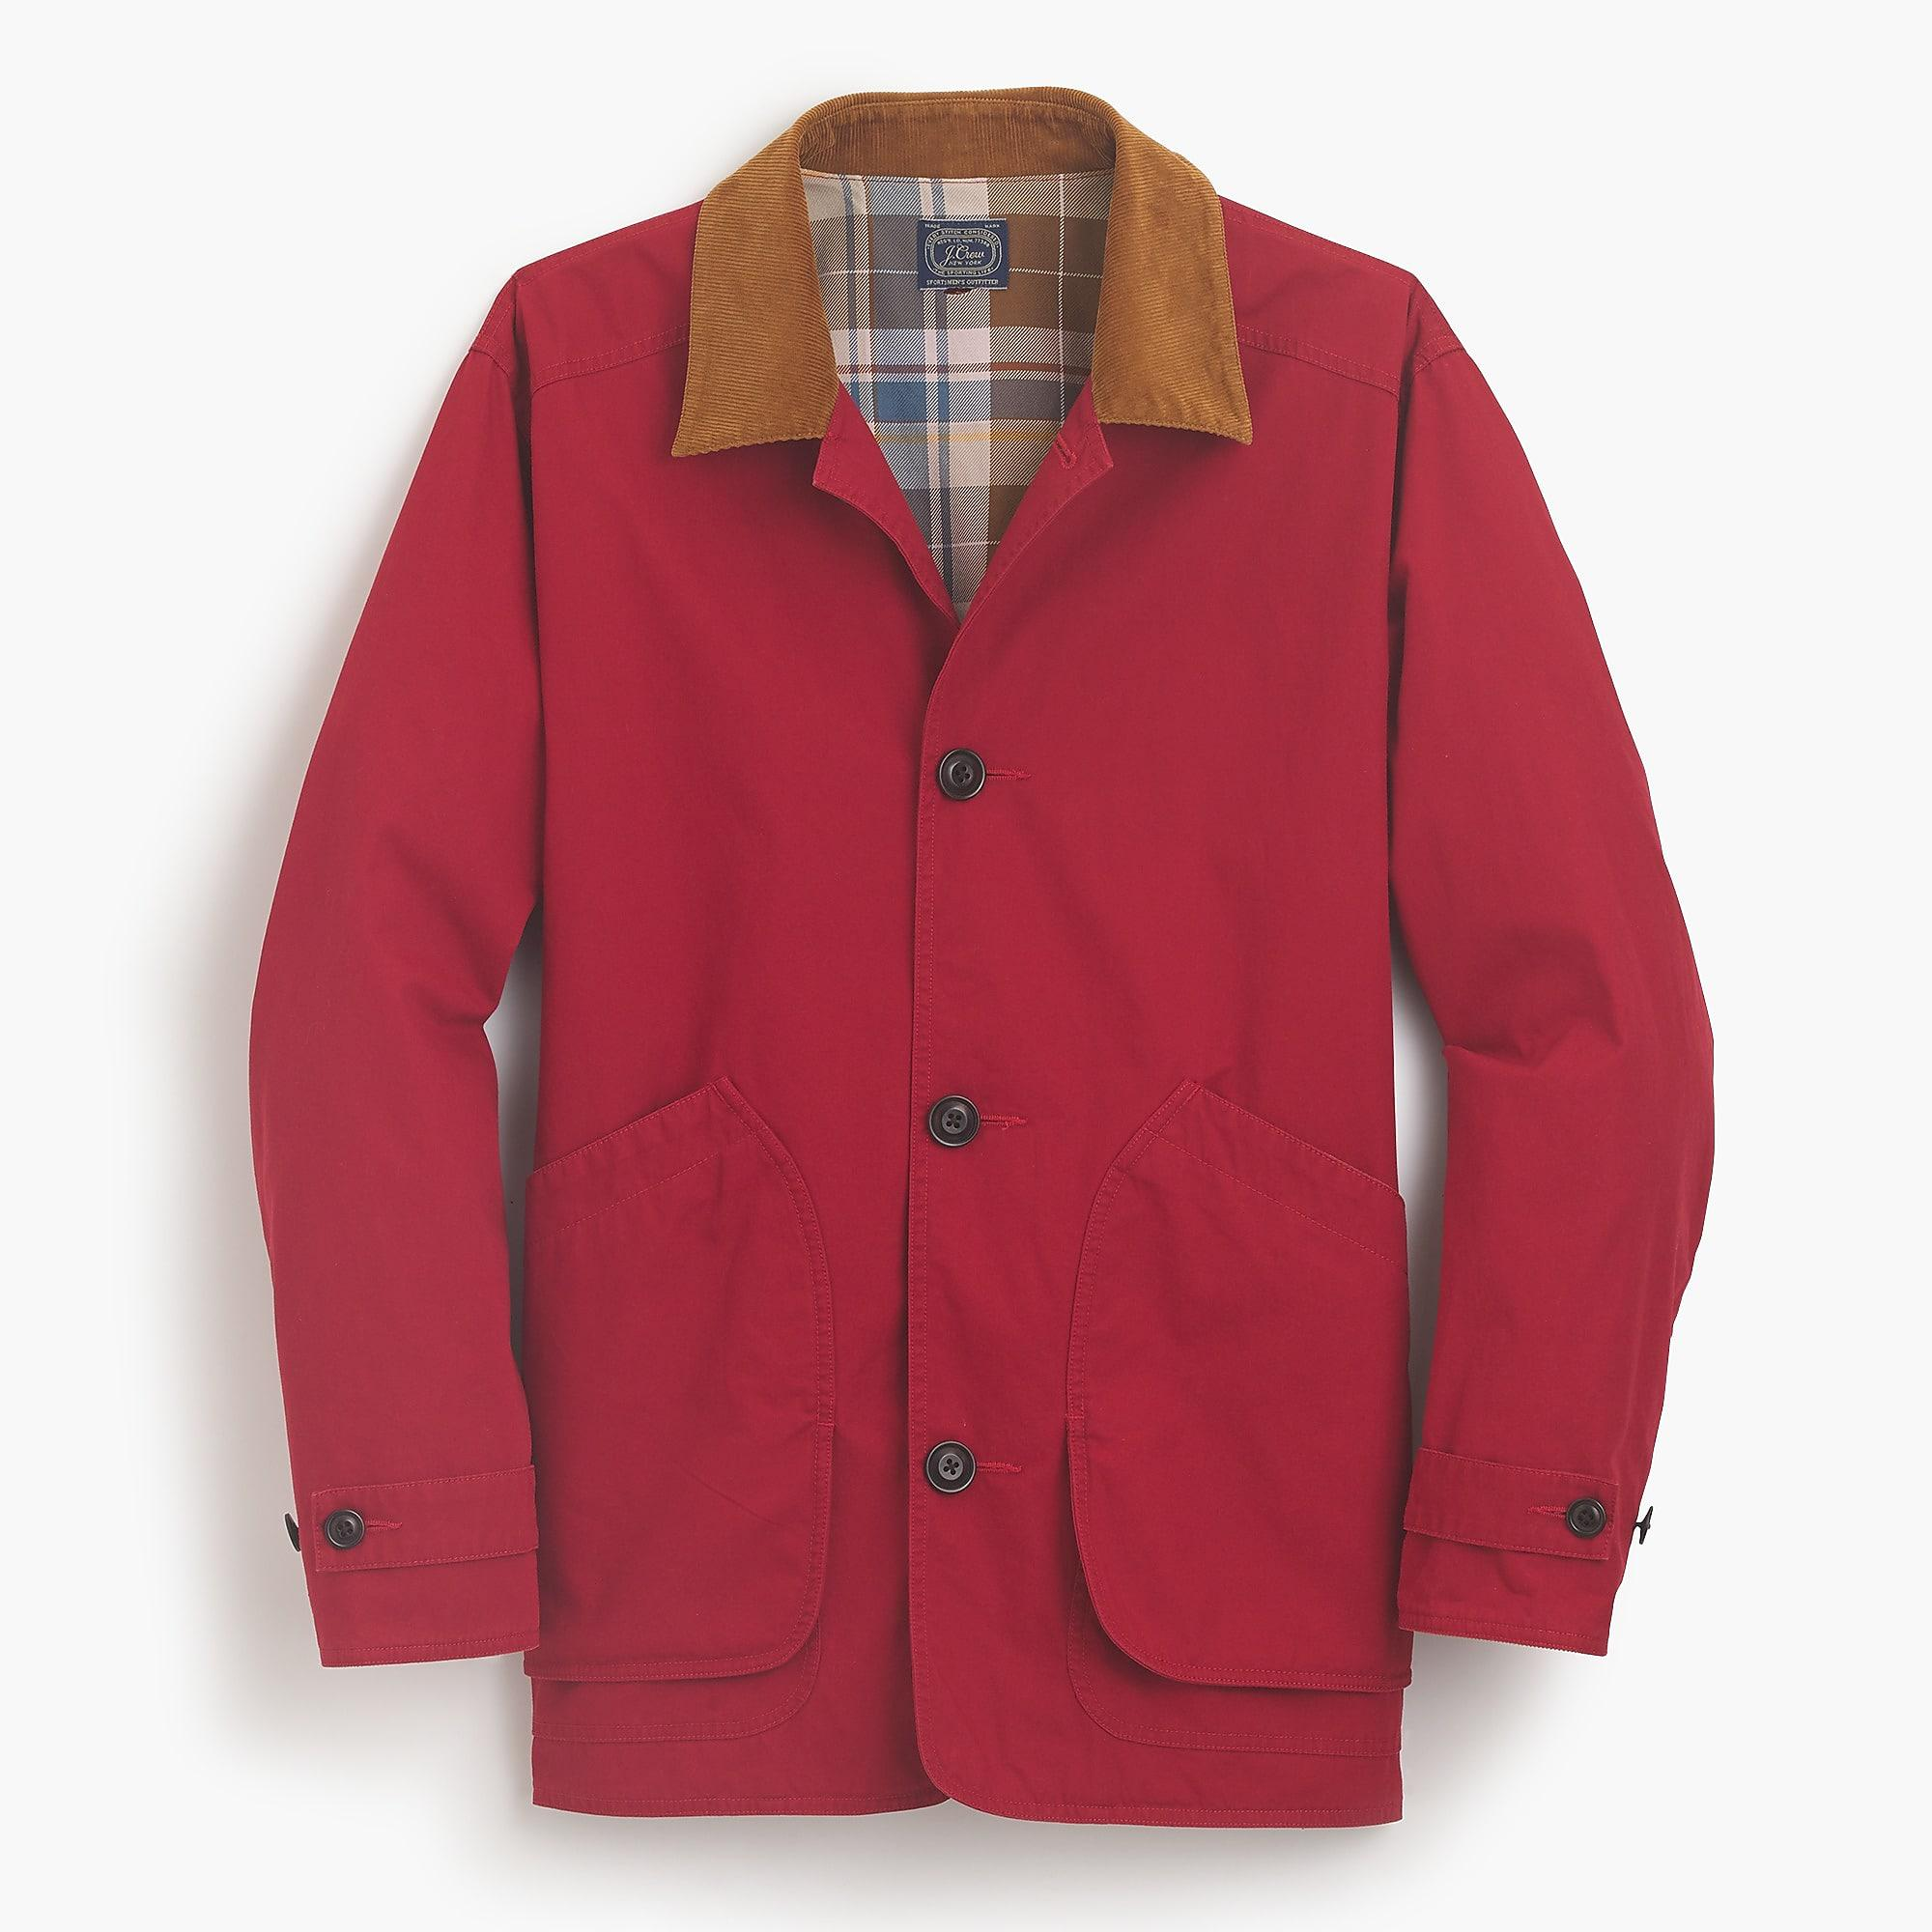 weather jackets barn fall jacket proof descpage barns gy krwp path large rs kerrits view